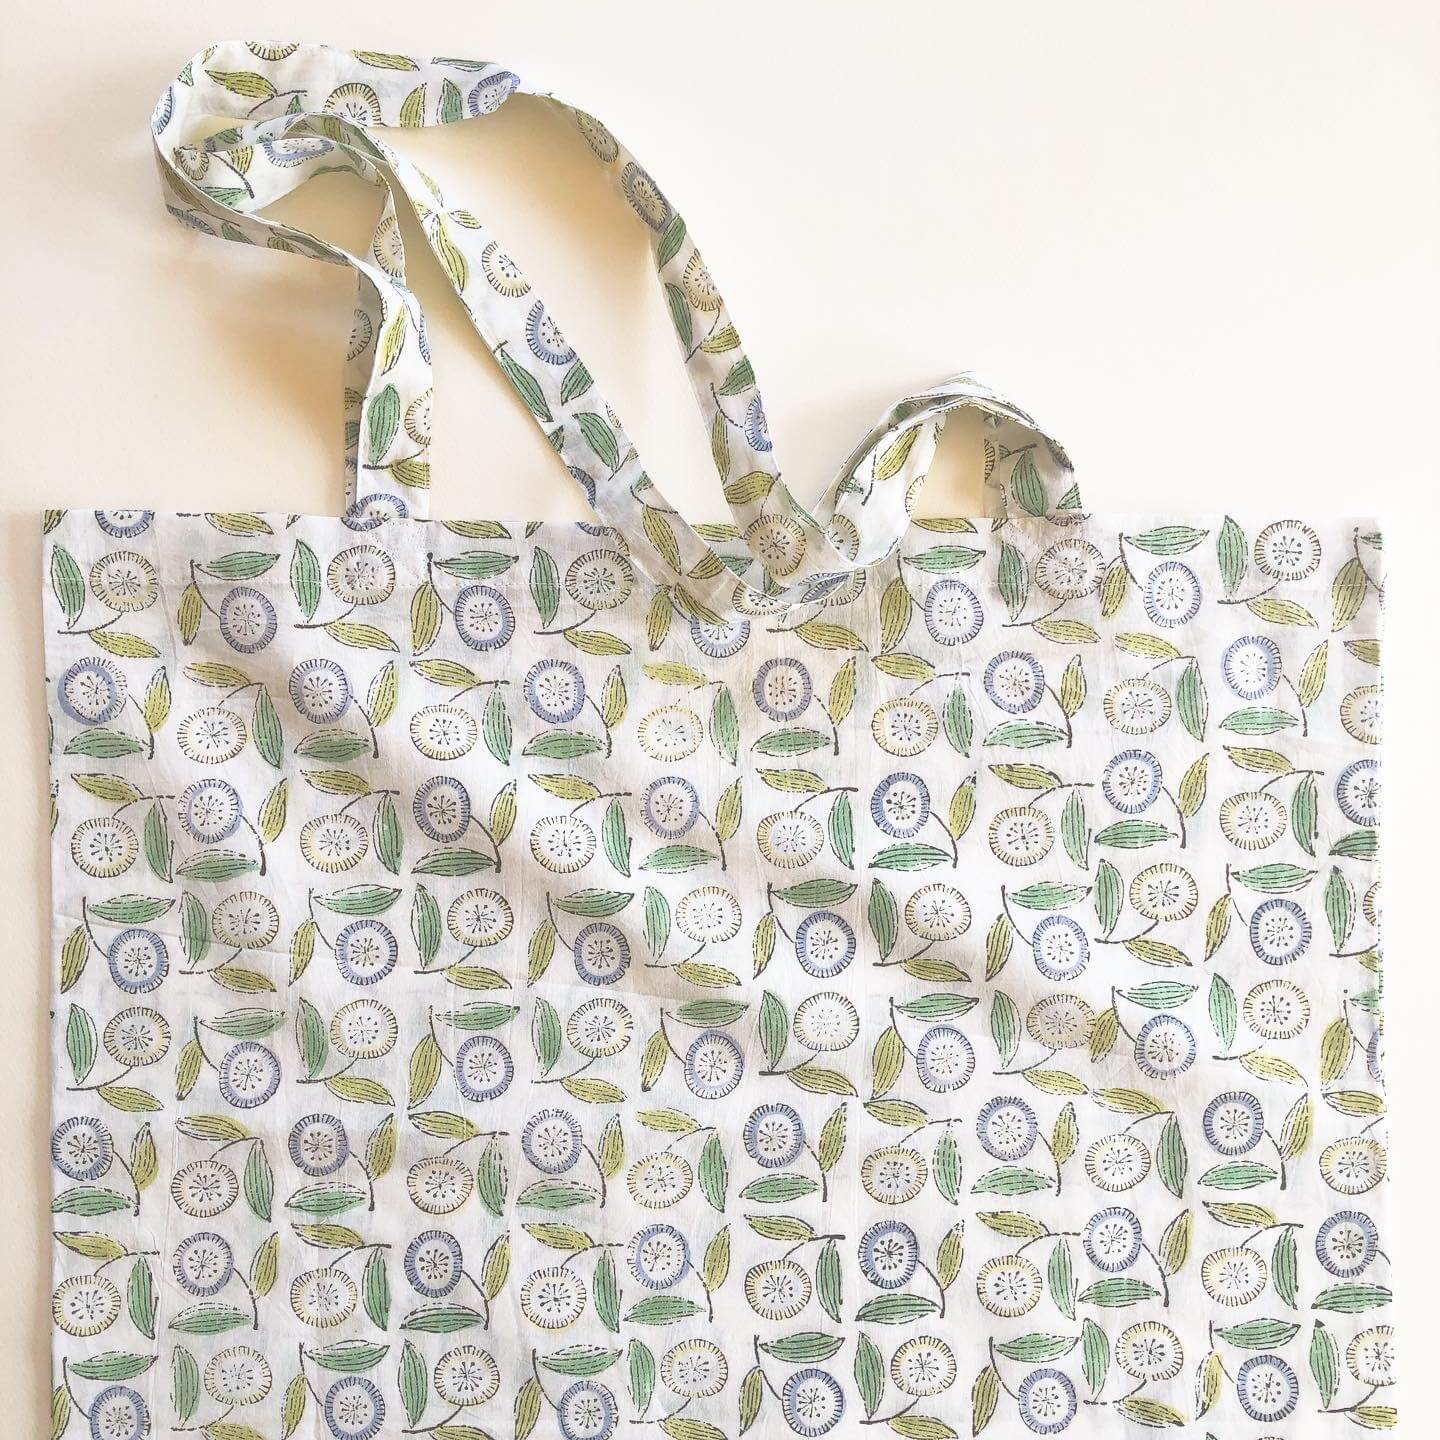 Karoyaka eco bag